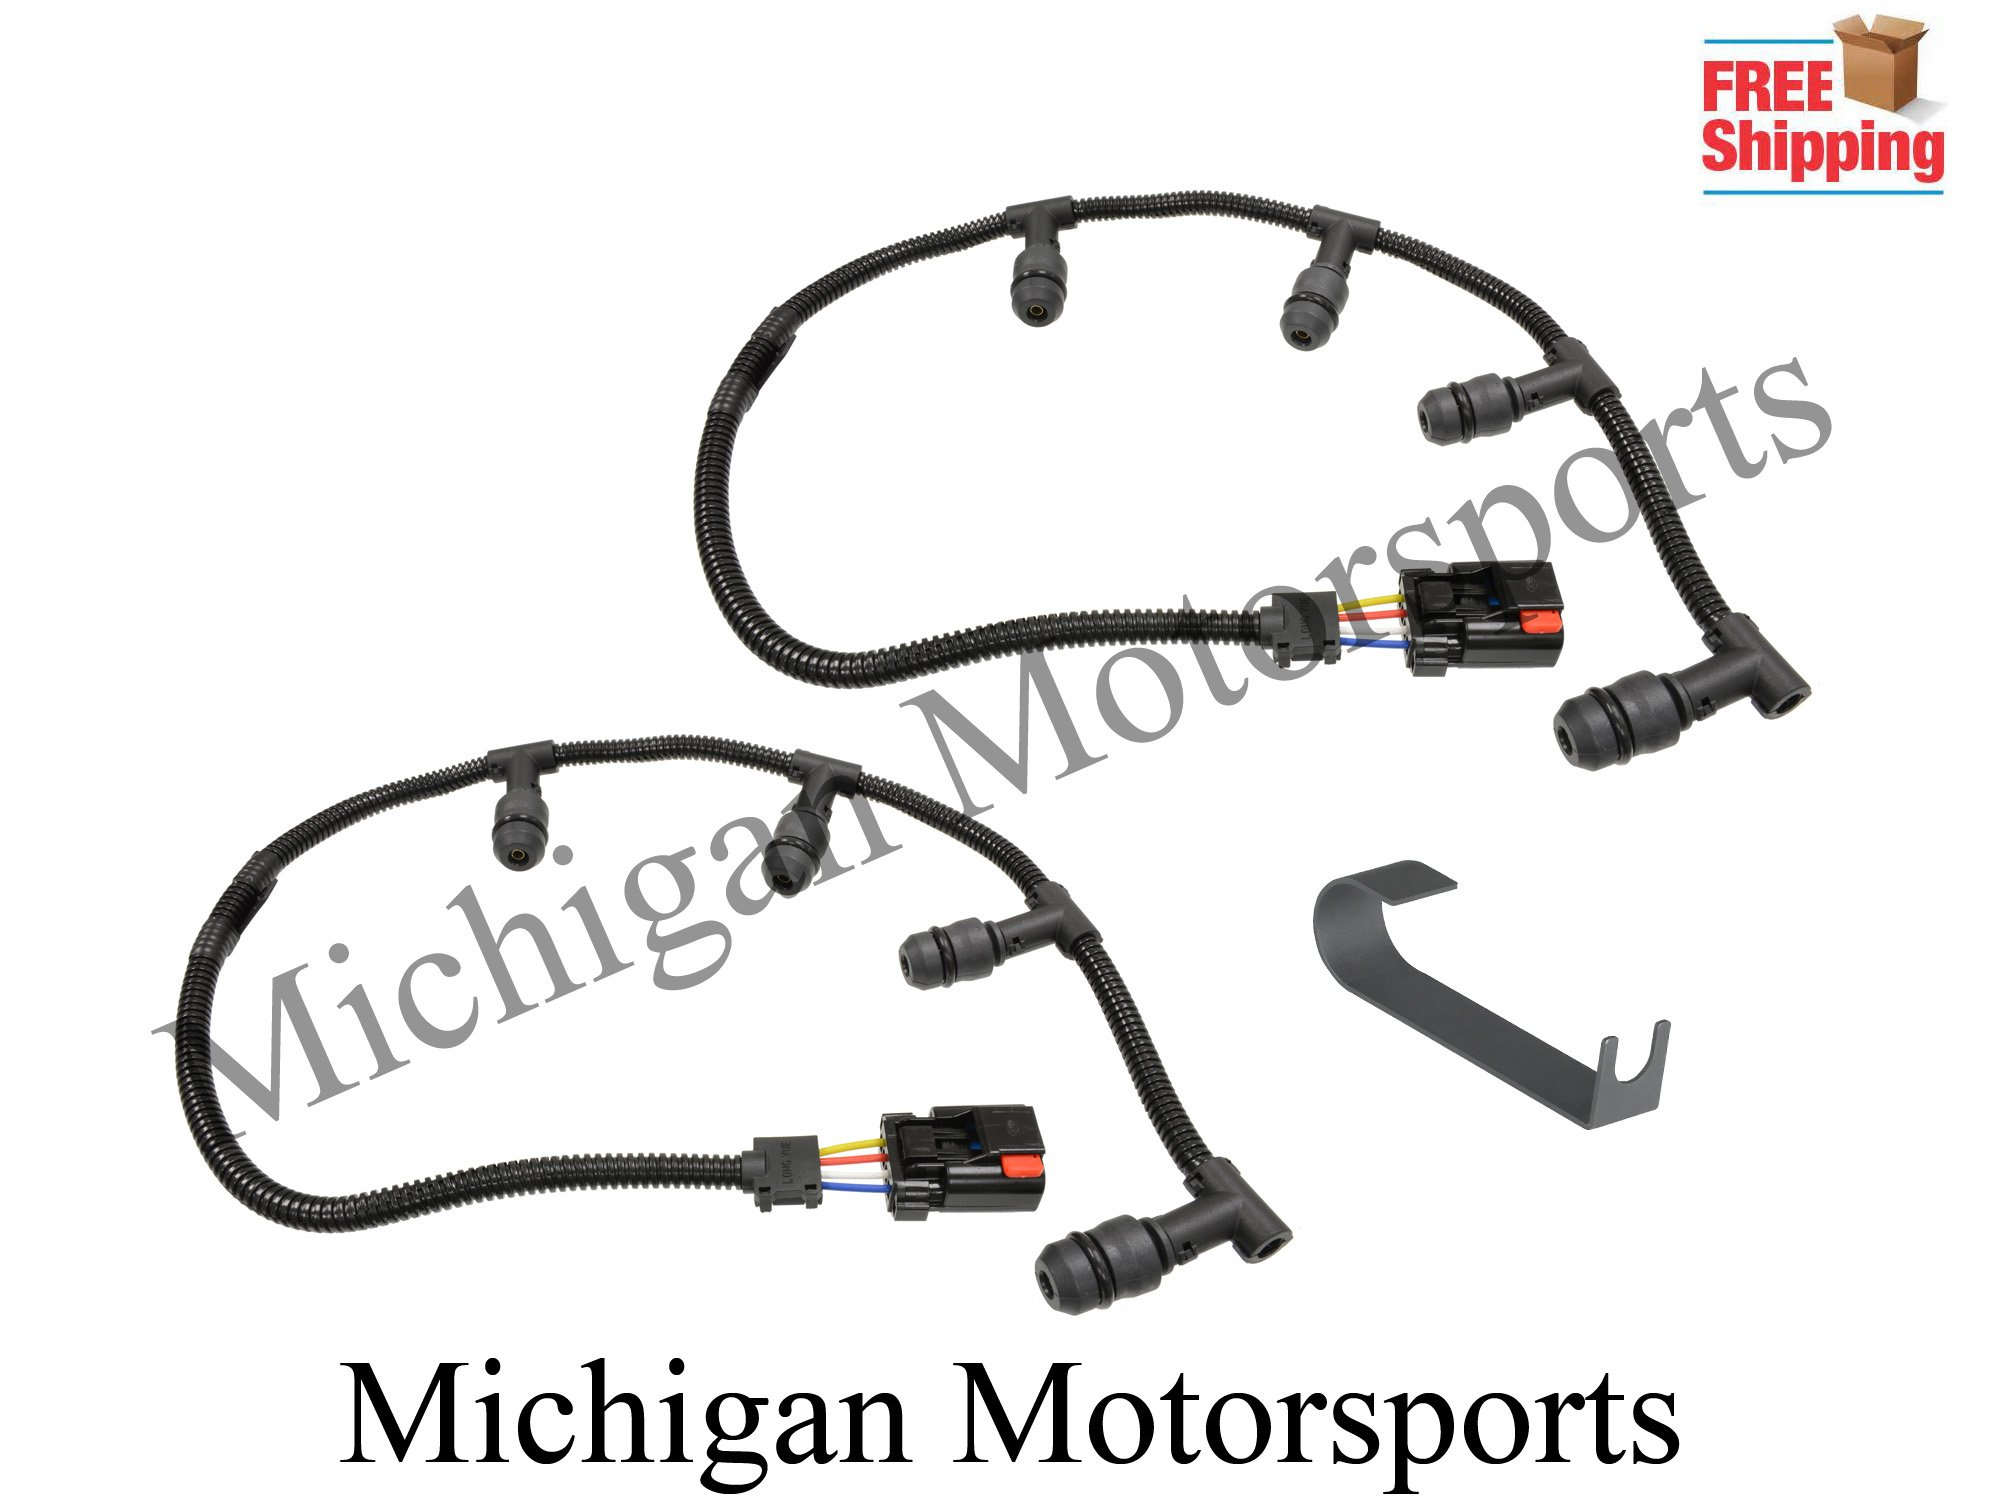 Michigan Motorsports Glow Plug Harness plus installation tool -Fits Ford 6.0L Powerstroke Diesel Truck 6.0 F250 F350 2004-10